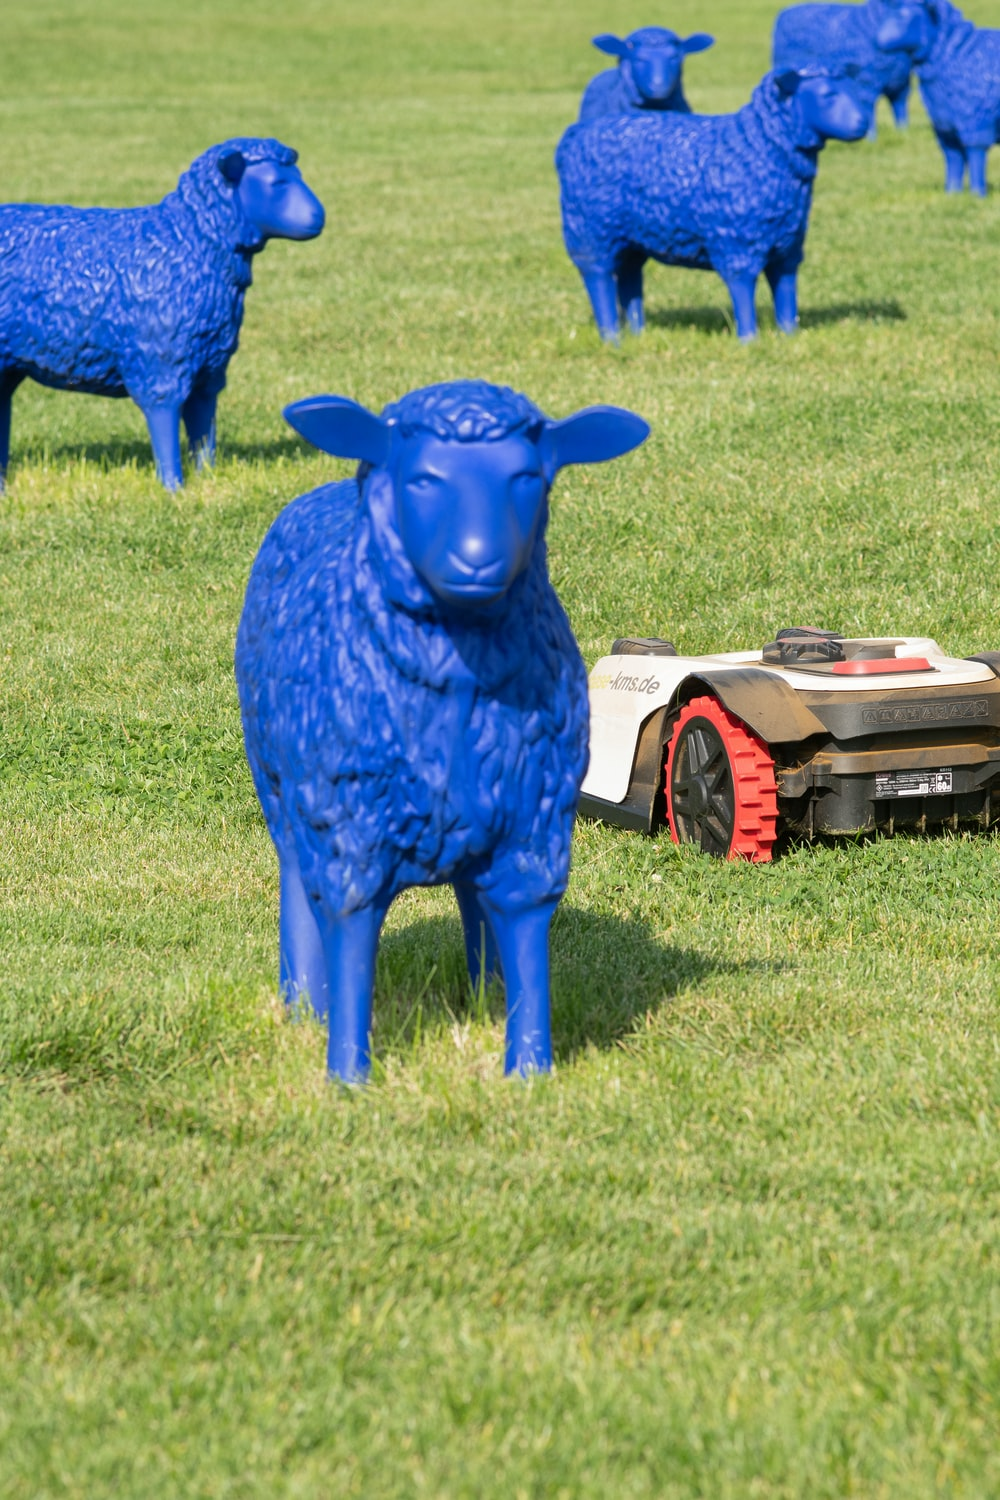 blue animal statue on green grass field during daytime